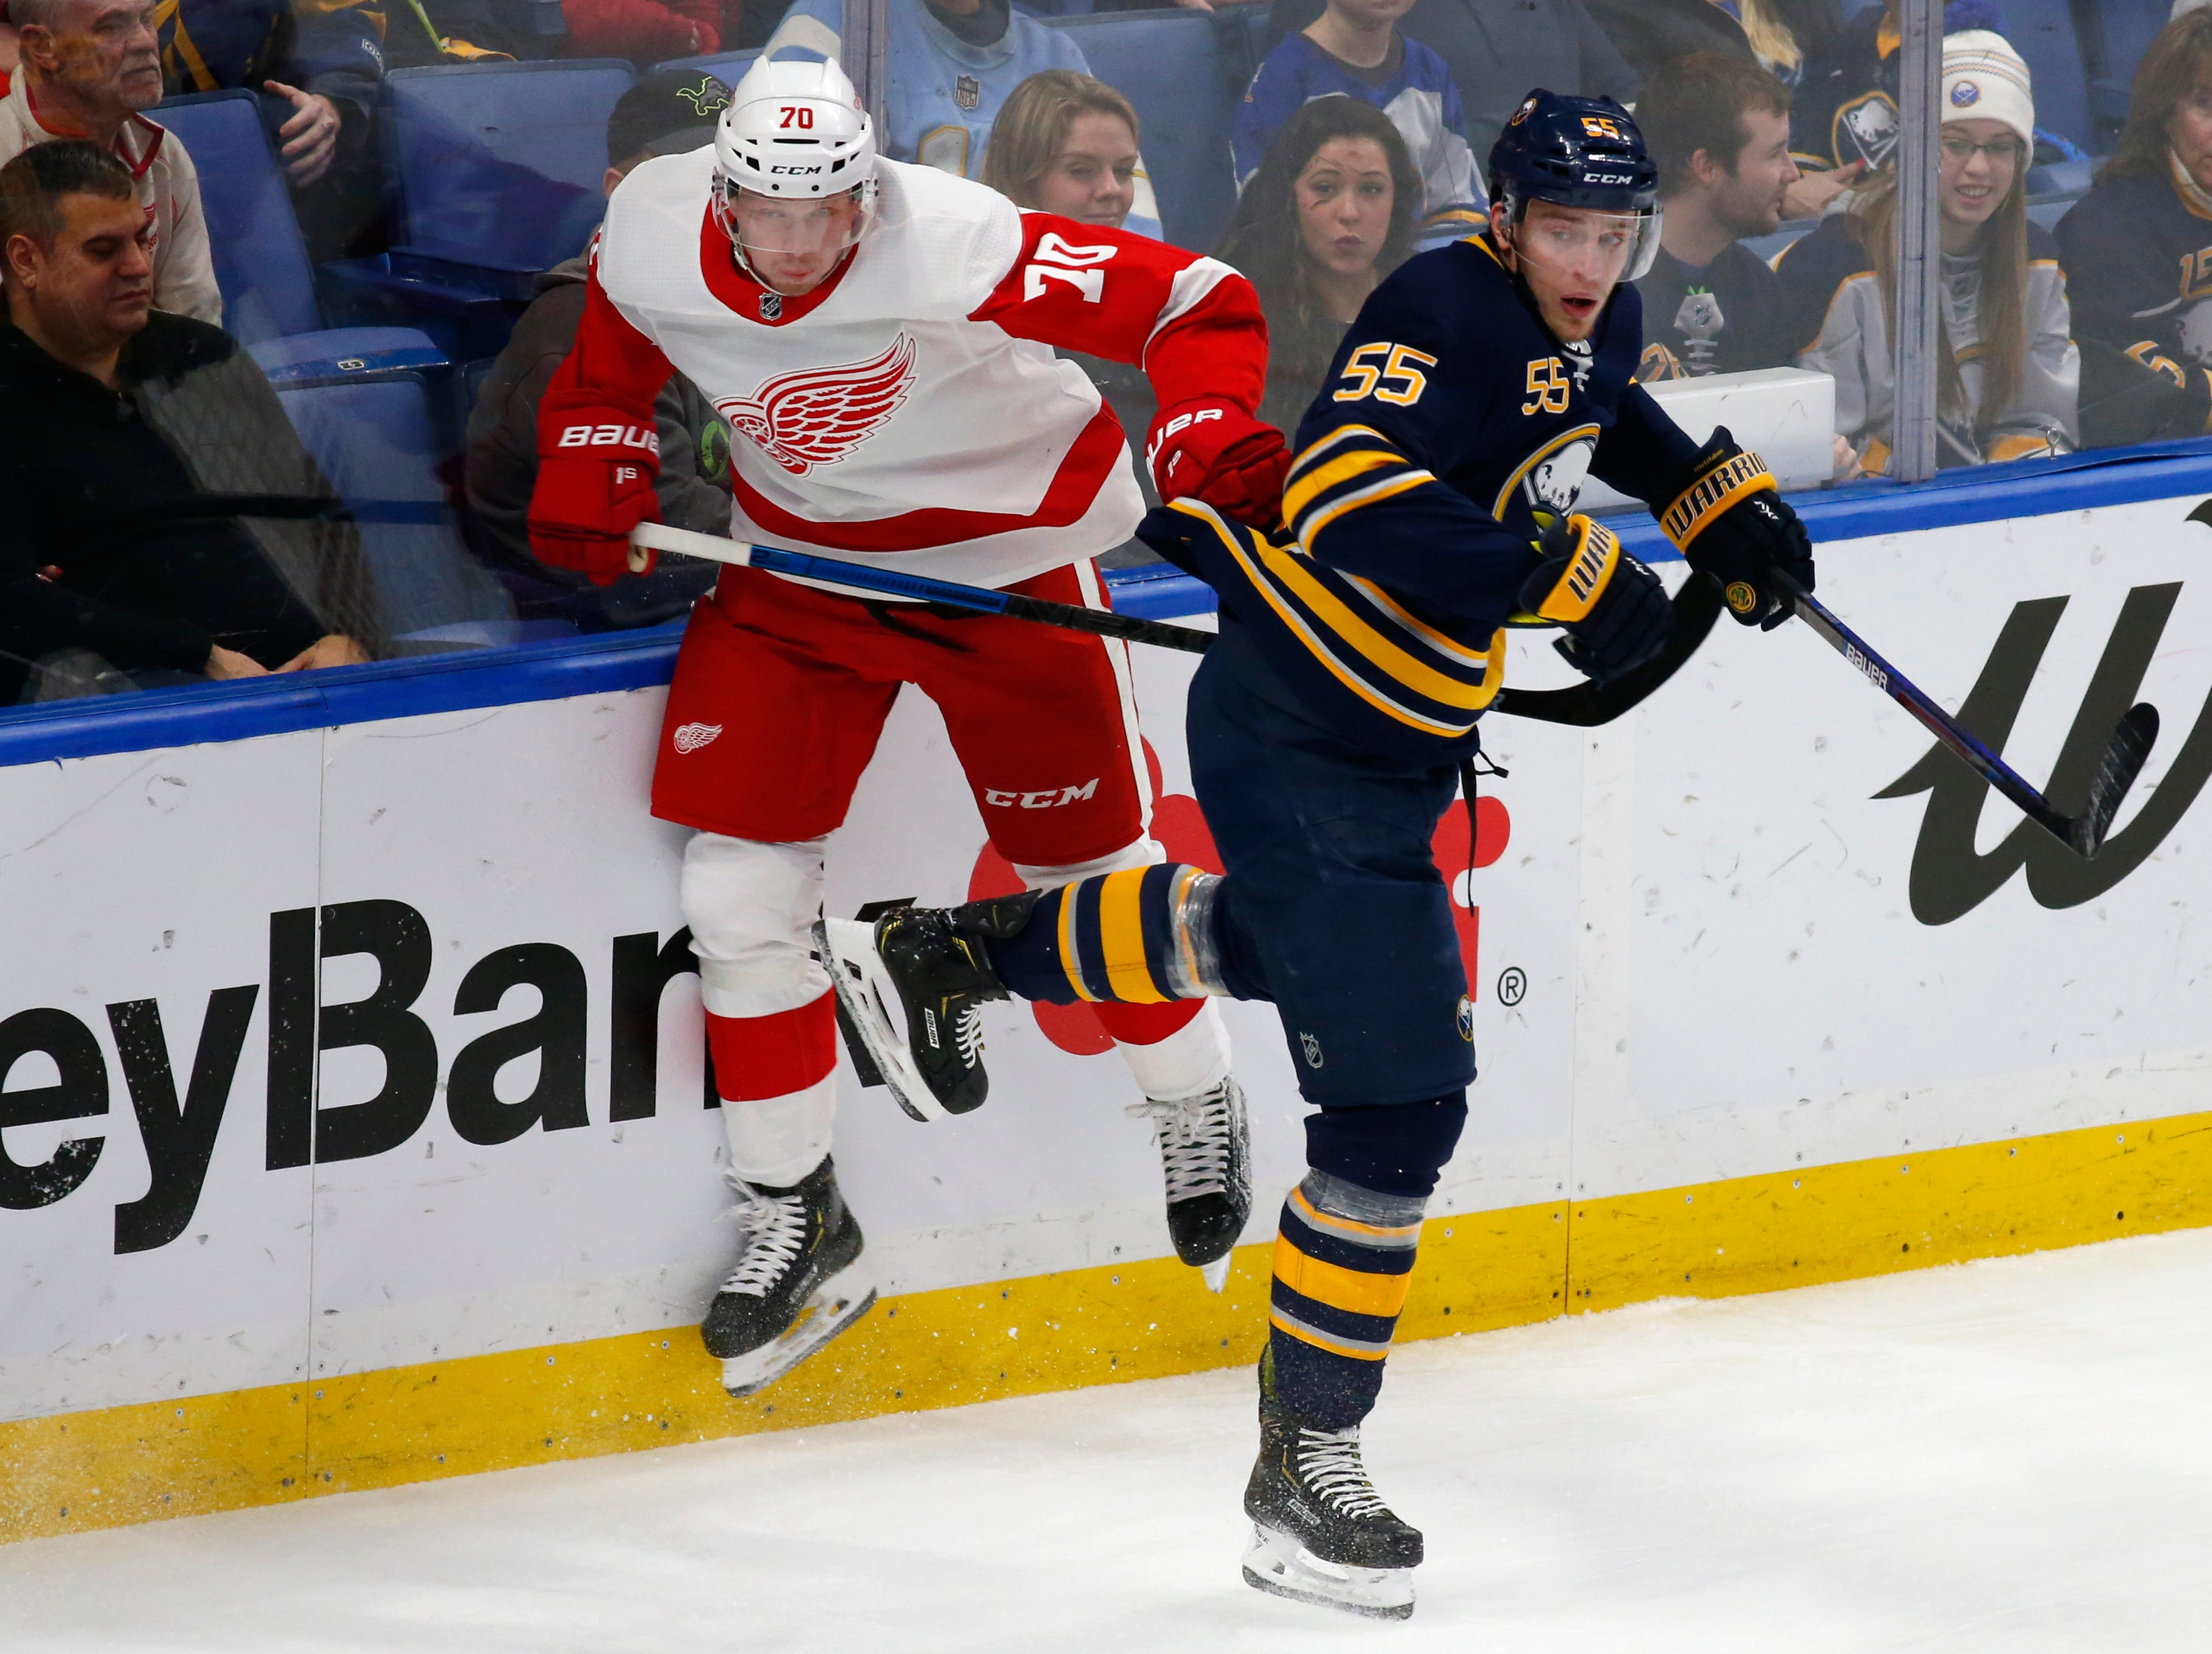 Sabres defenseman Rasmus Ristolainen and Red Wings forward Christoffer Ehn collide during the first period on Saturday, Feb. 9, 2019, in Buffalo N.Y.